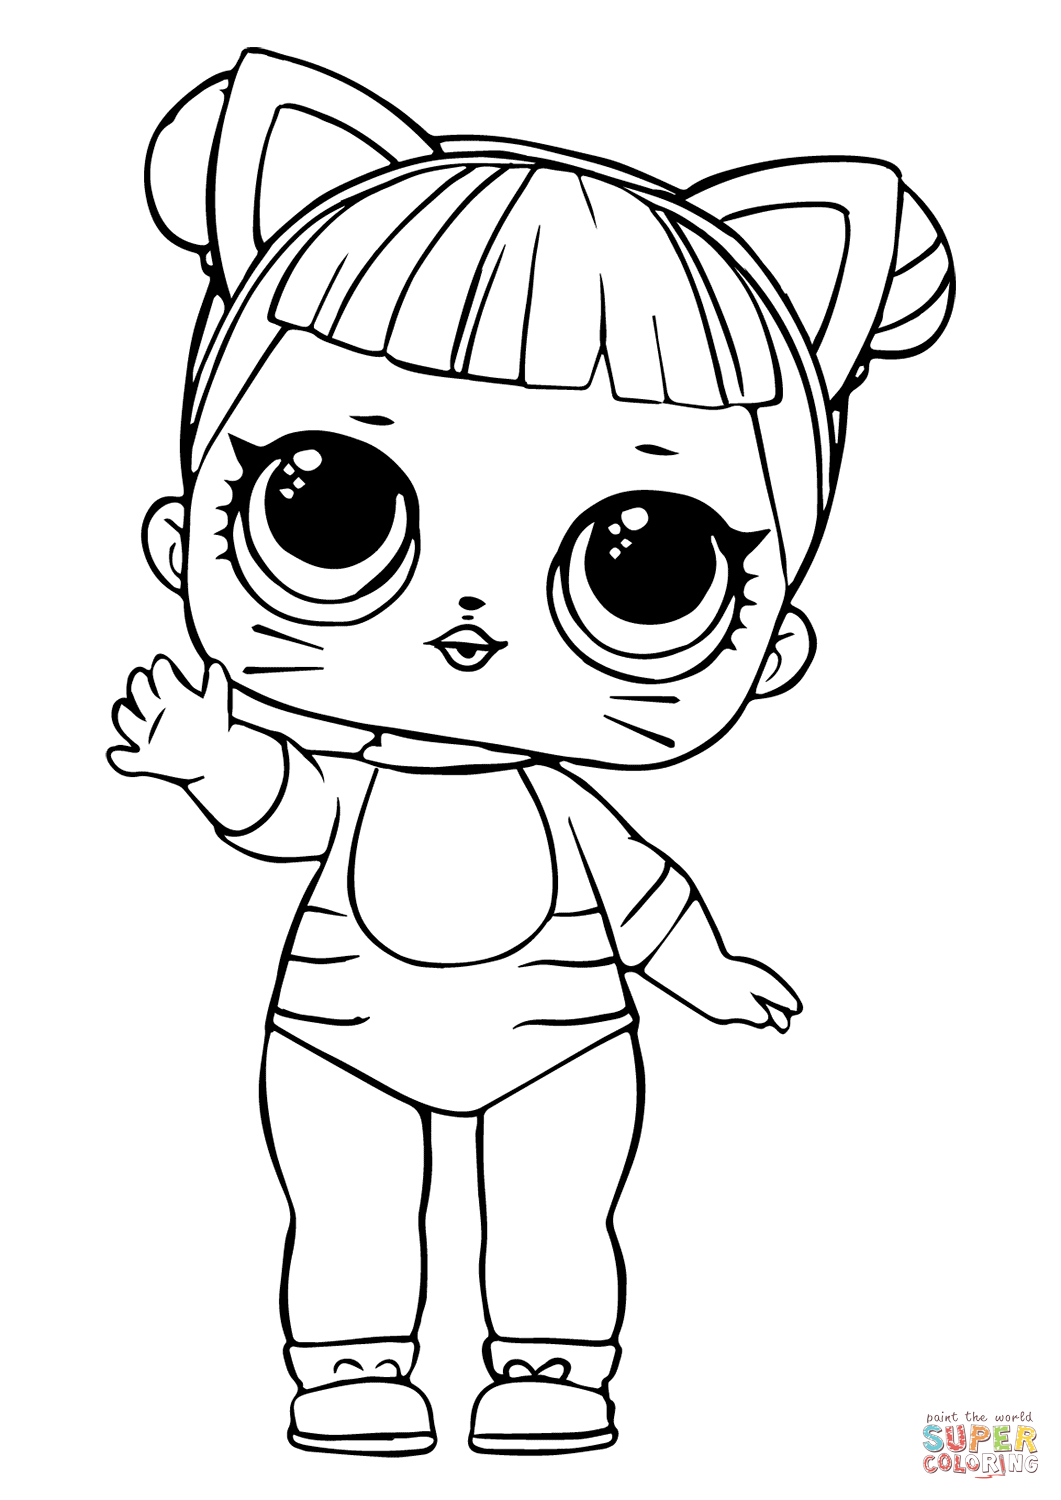 lol doll cat coloring pages lol surprise doll coloring pages series 1 baby cat free coloring doll pages lol cat